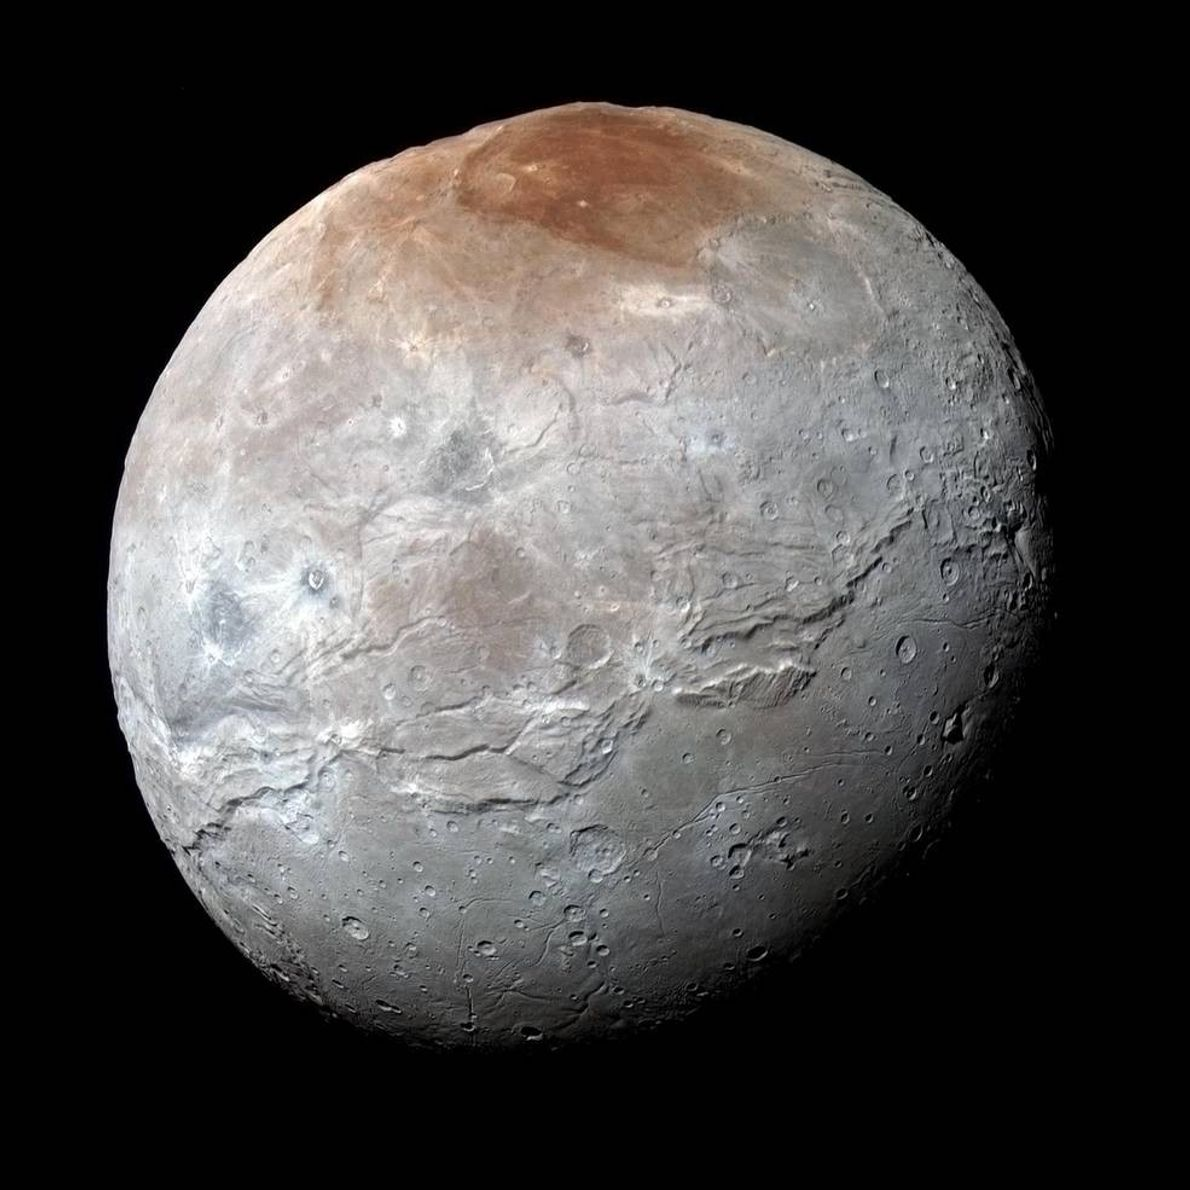 NASA's New Horizons captured this high-resolution enhanced colour view of Charon, Pluto's moon, just before closest ...